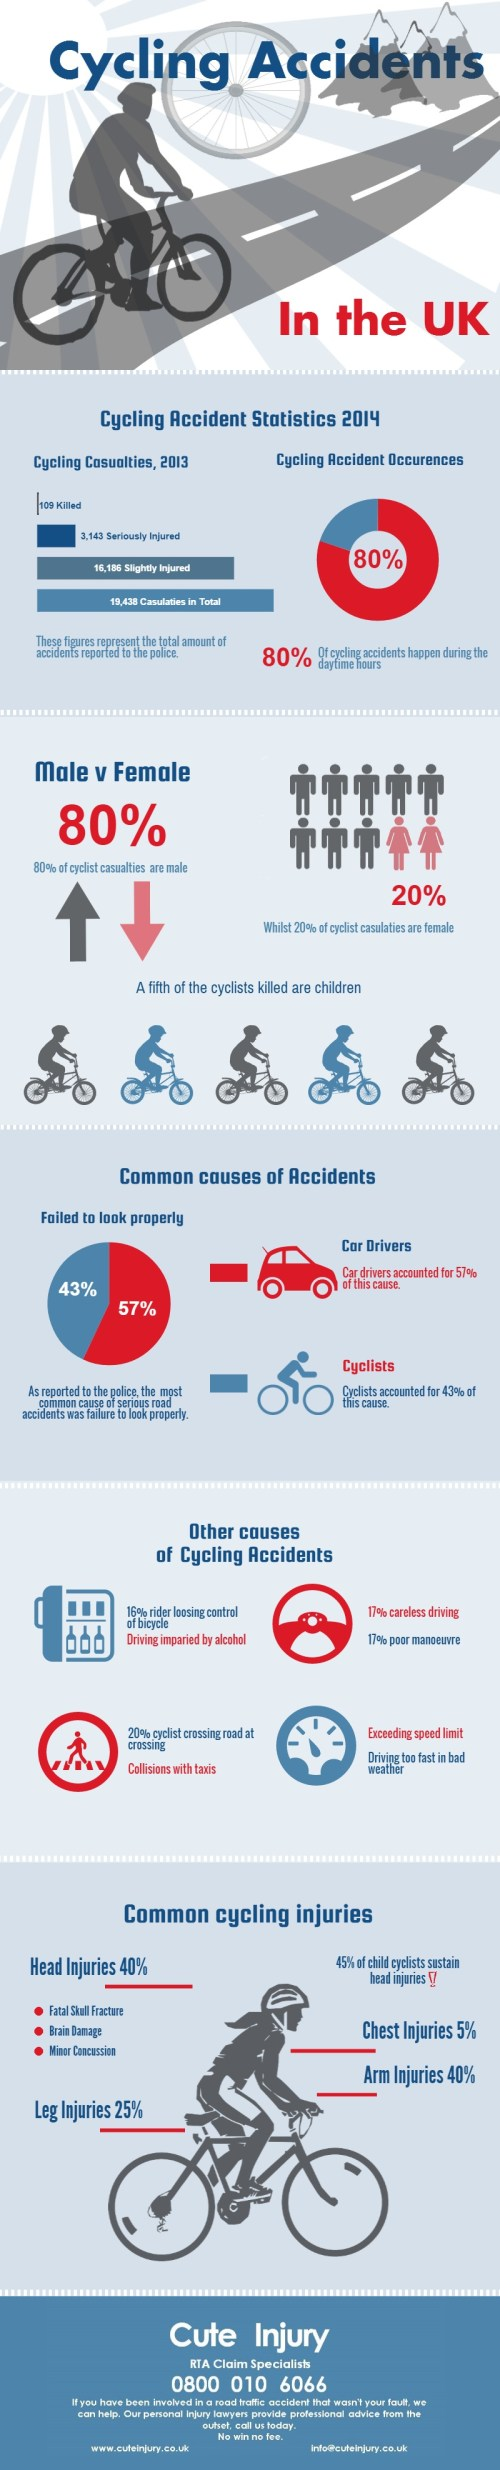 Cycling-accident-statistic-UK